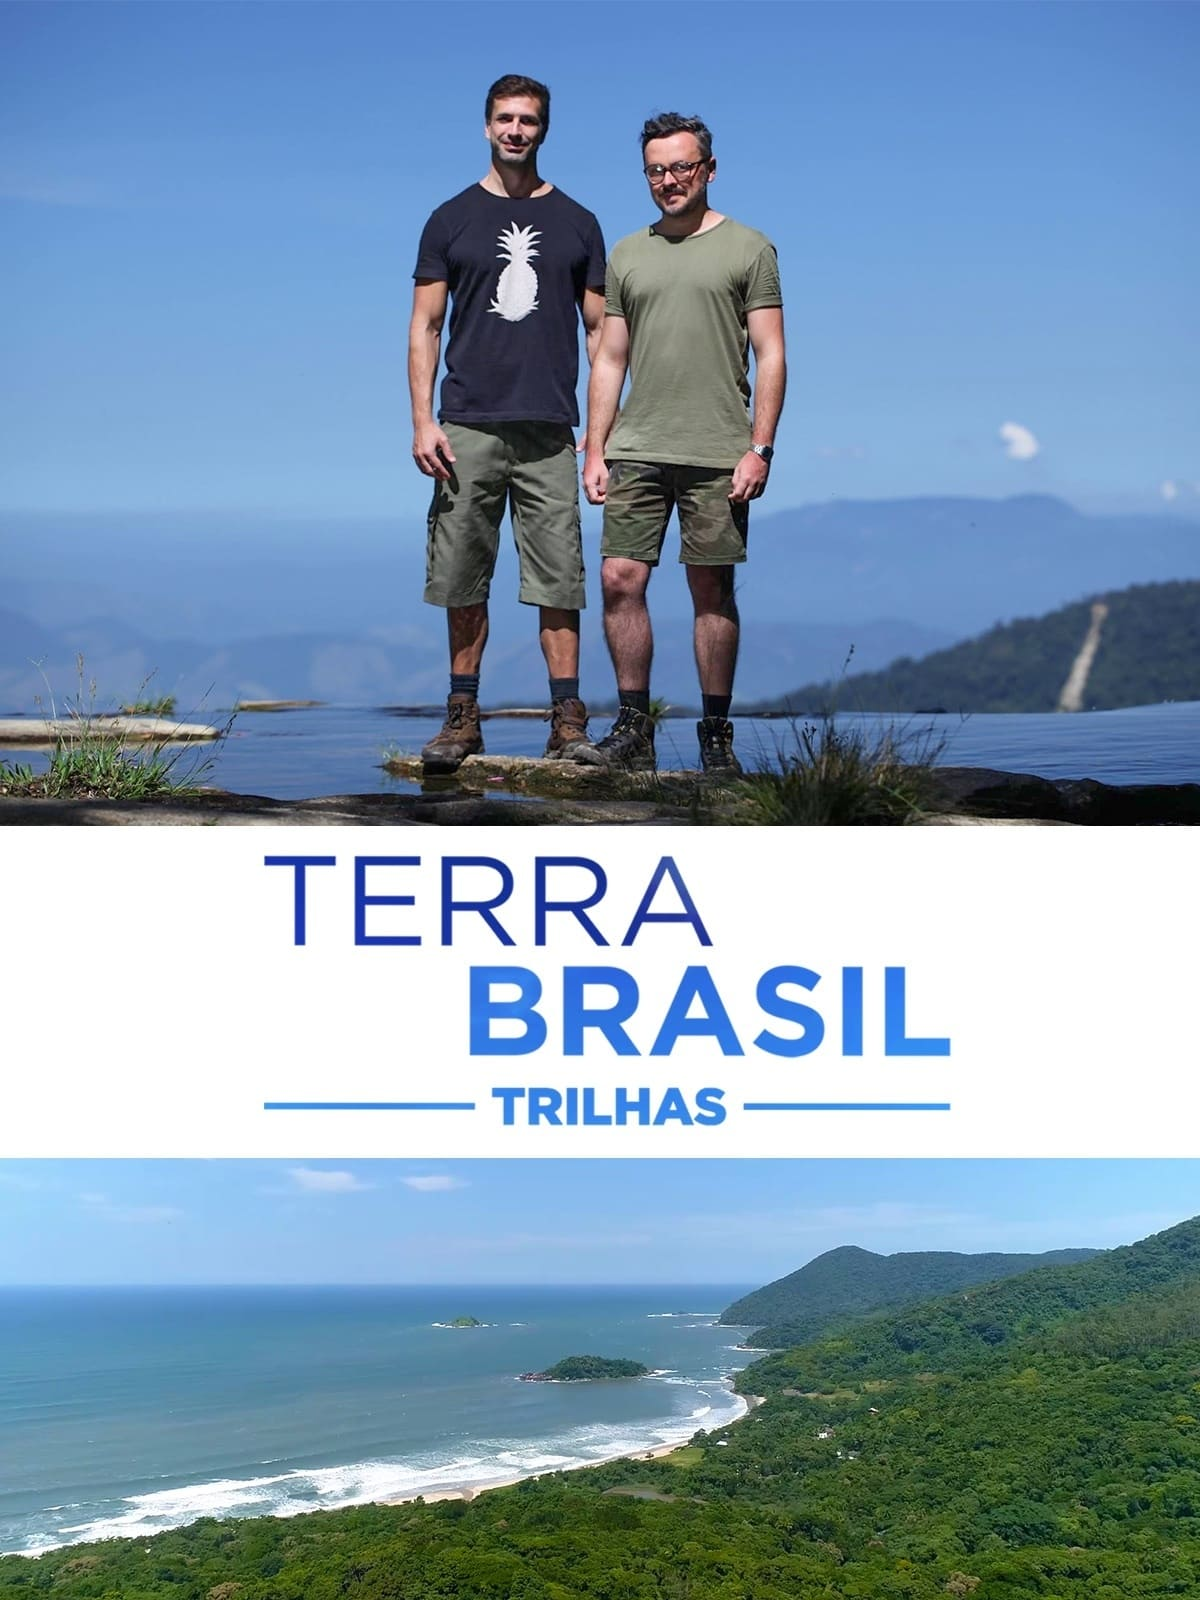 Terra Brasil - Trilhas TV Shows About Travel